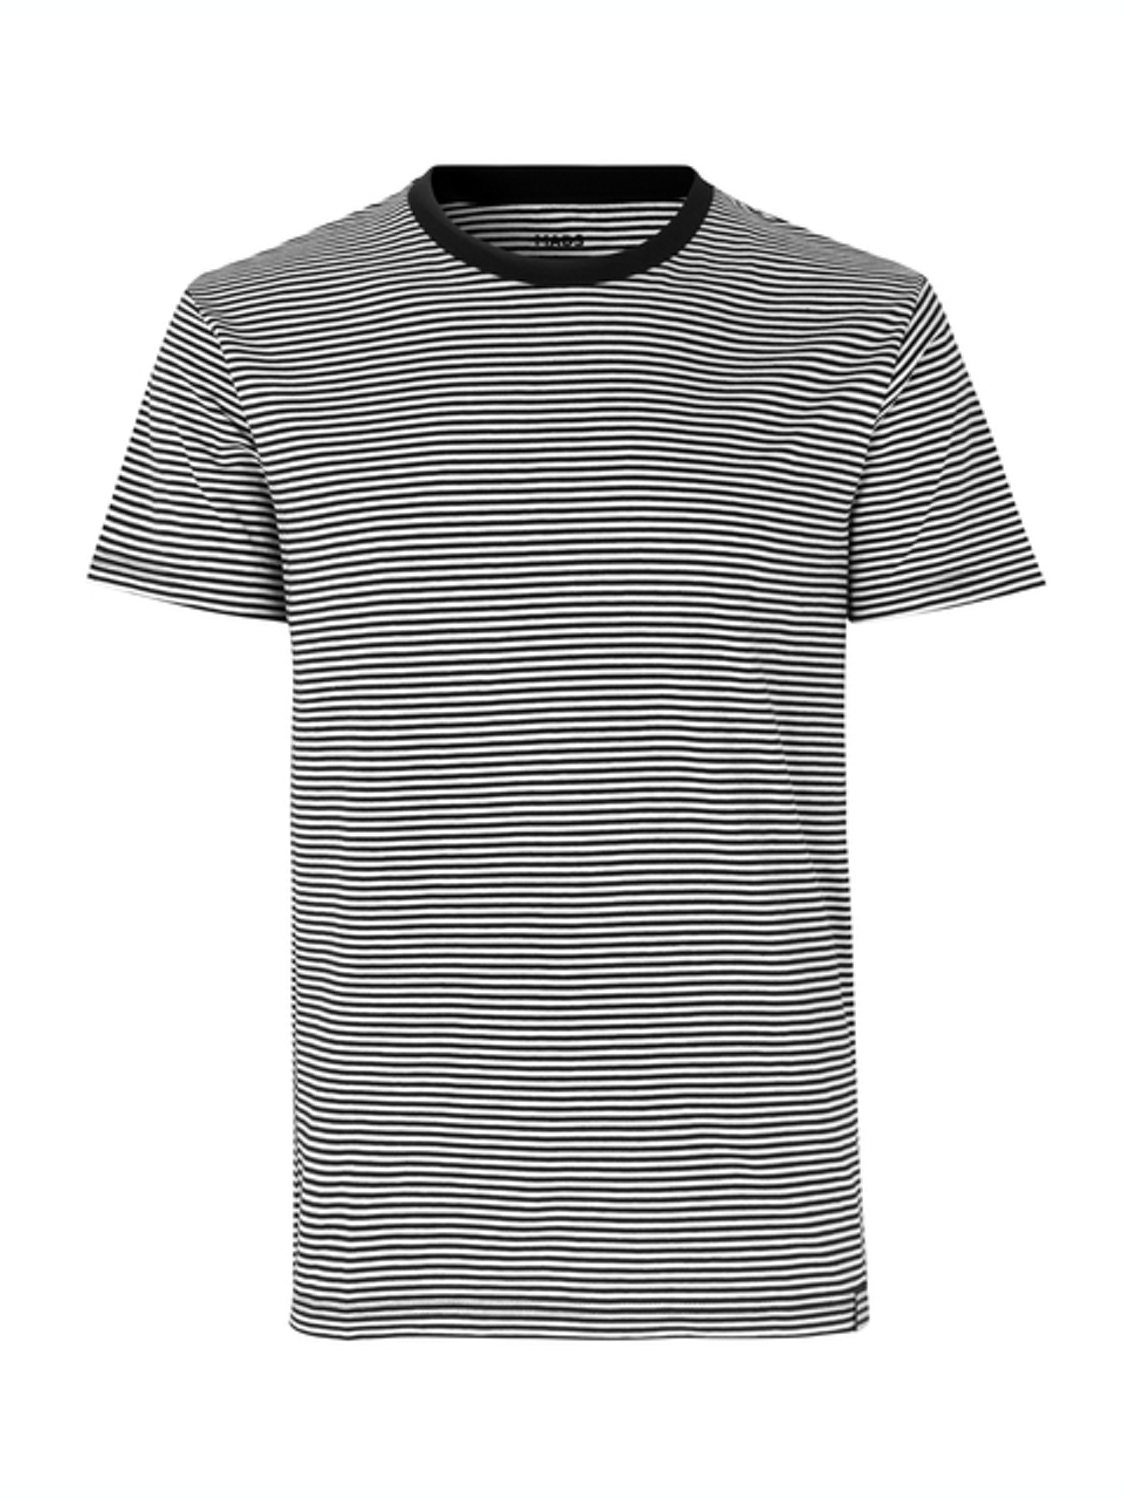 Mads Nørgaard Favorite Tee - Mini Black/White | GATE 36 Hobro